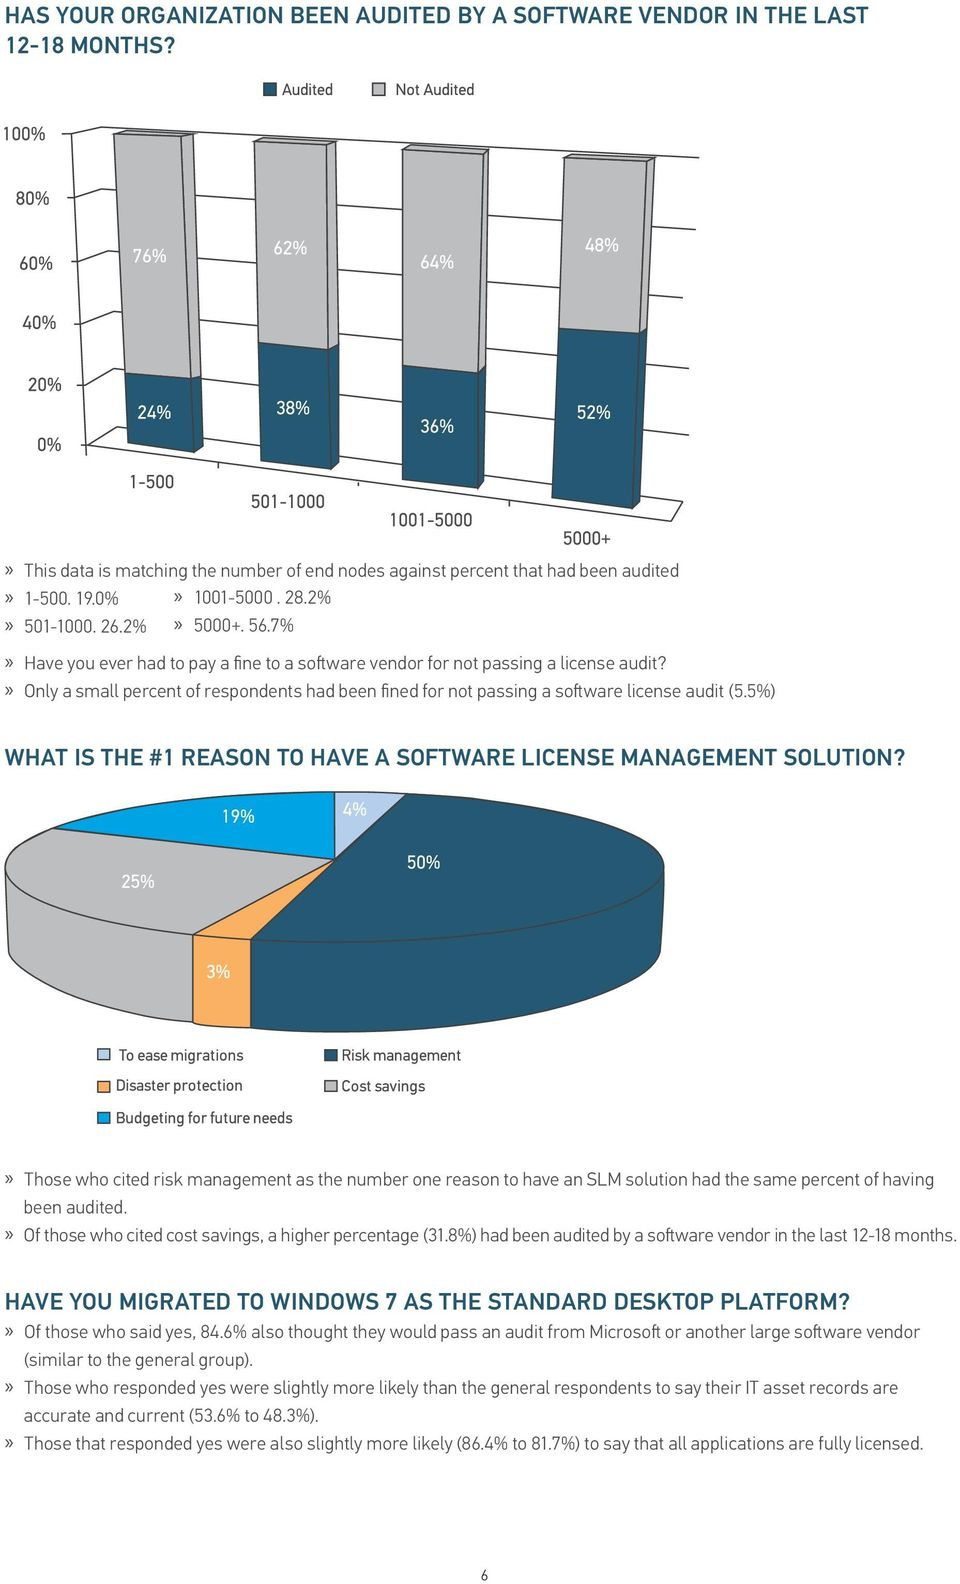 Only a small percent of respondents had been fined for not passing a software license audit (5.5%) WHAT IS THE #1 REASON TO HAVE A SOFTWARE LICENSE MANAGEMENT SOLUTION?